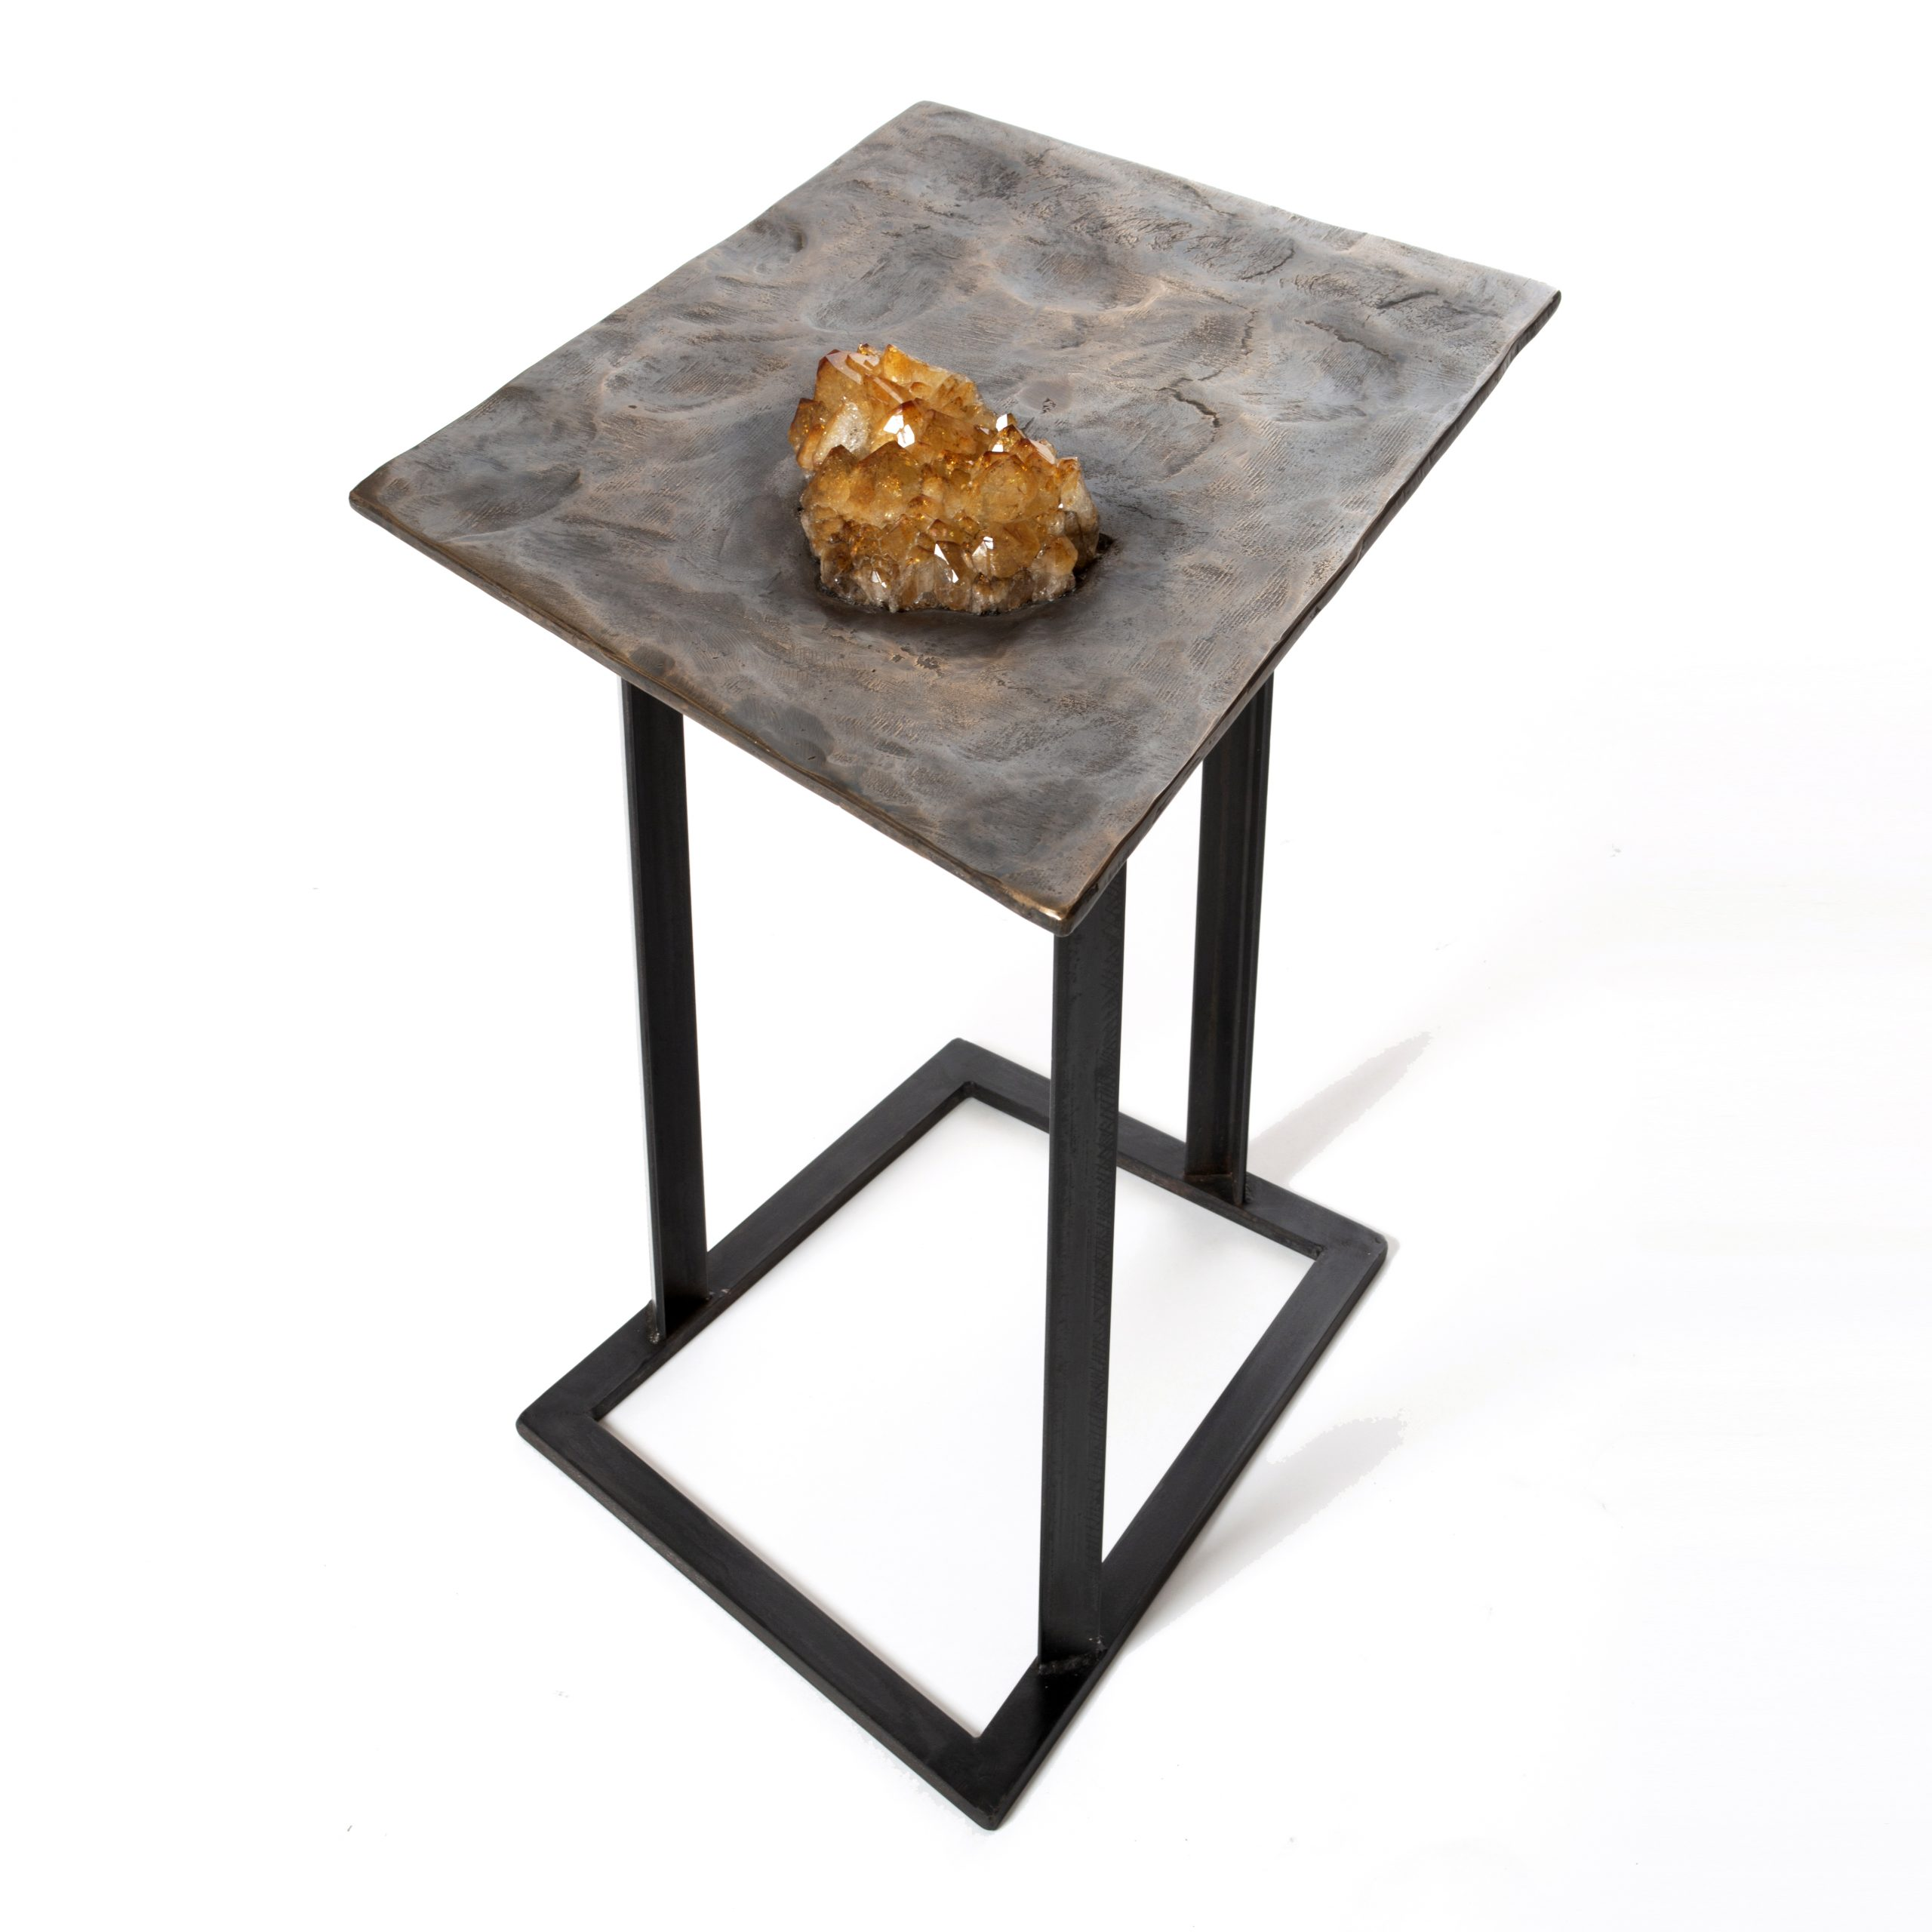 Crystal Series #7 Side Table by Chuck Moffit